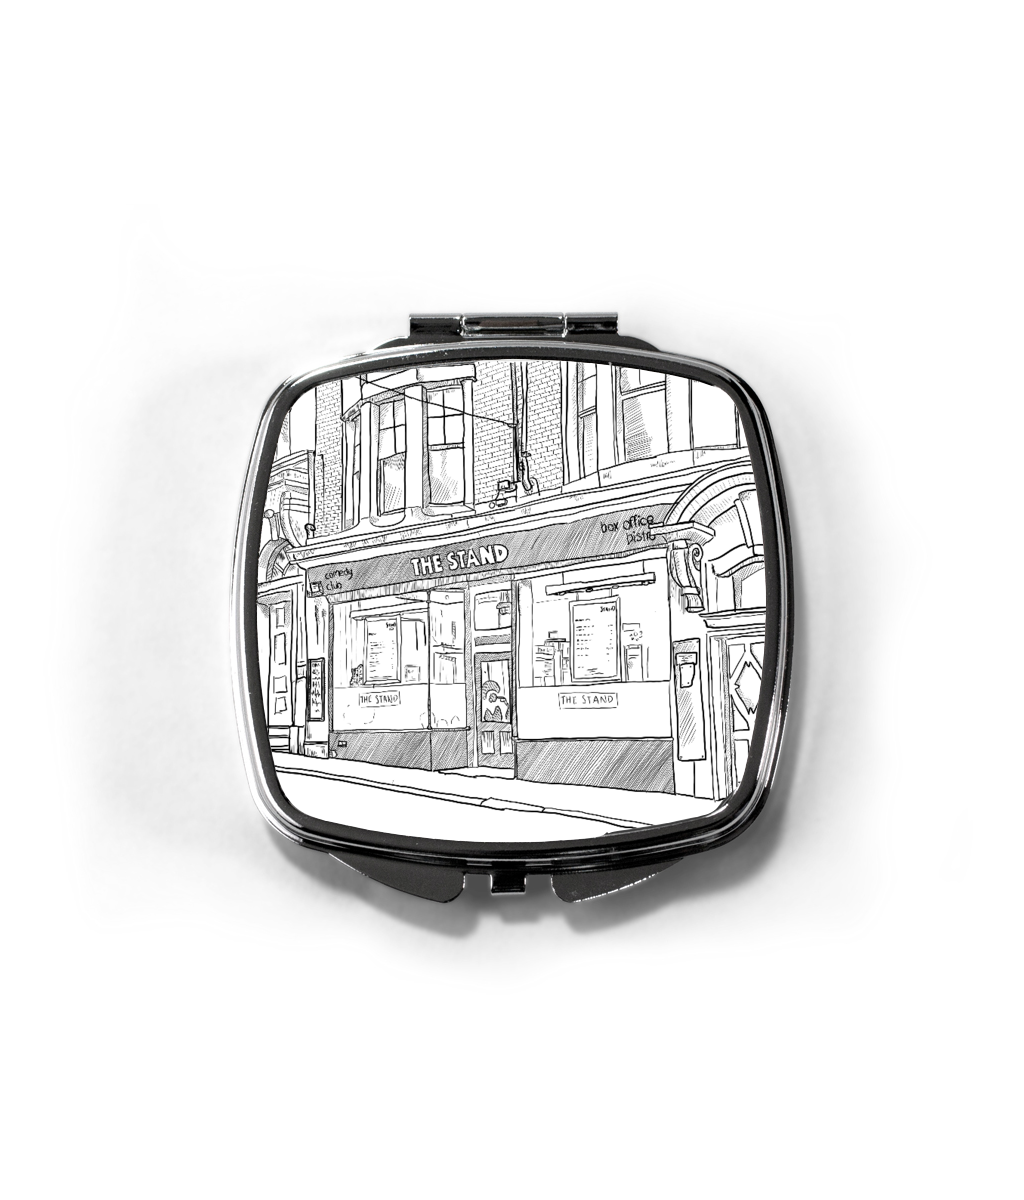 Matt Reed Illustration | Compact Mirror | The Stand Newcastle